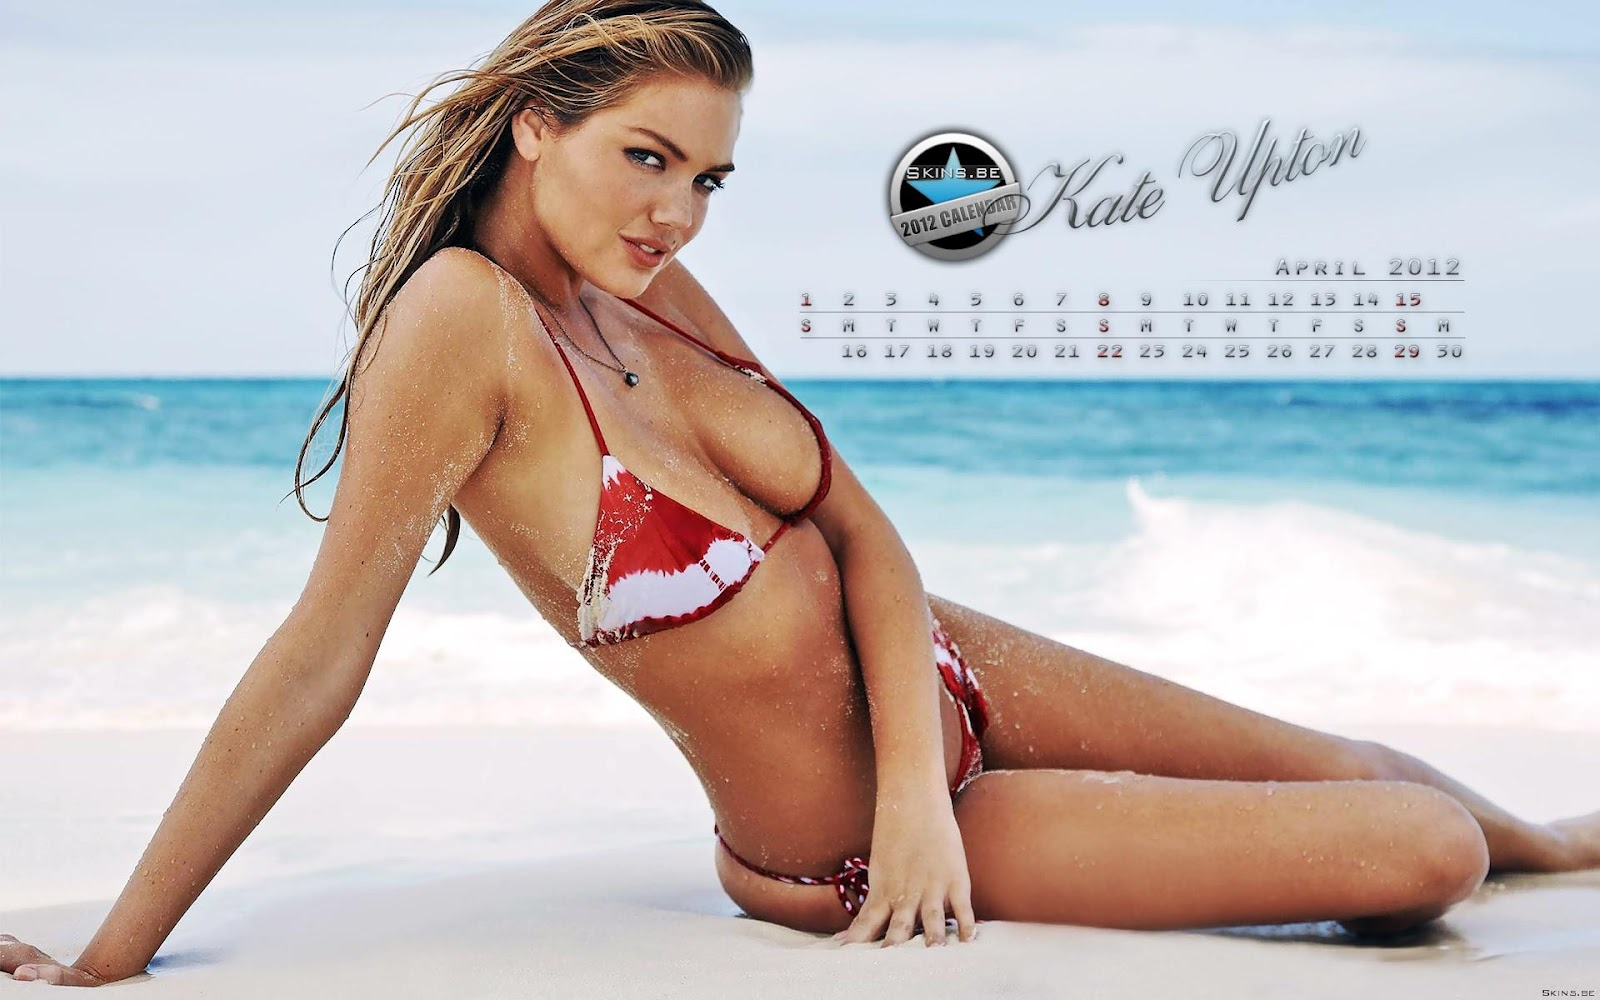 http://4.bp.blogspot.com/-zYl2J6dOIOM/T6UkQPM2vSI/AAAAAAAAFlE/JeNkkmrMEiI/s1600/Kate-Upton-HD-Wallpaper-_11.jpg